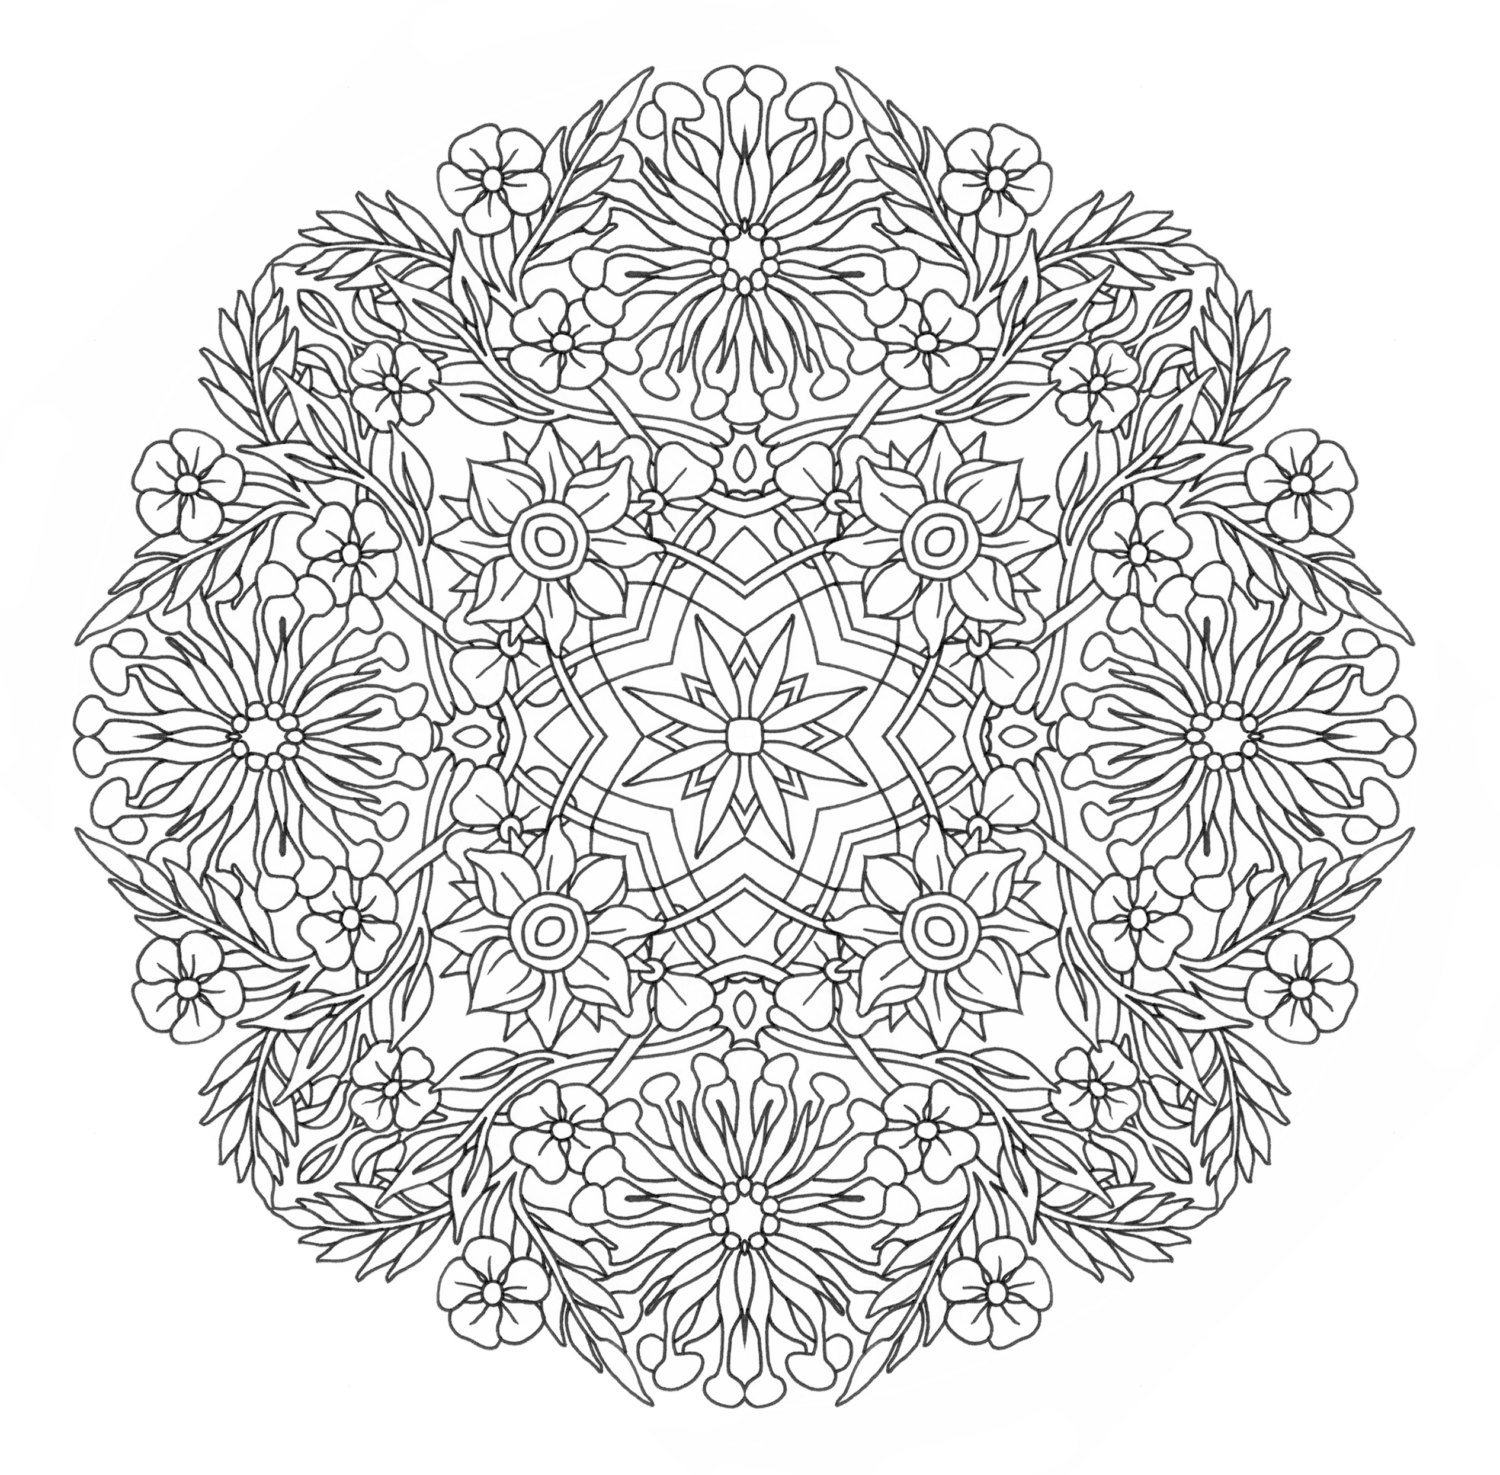 Mandala Coloring Pages Expert Level.